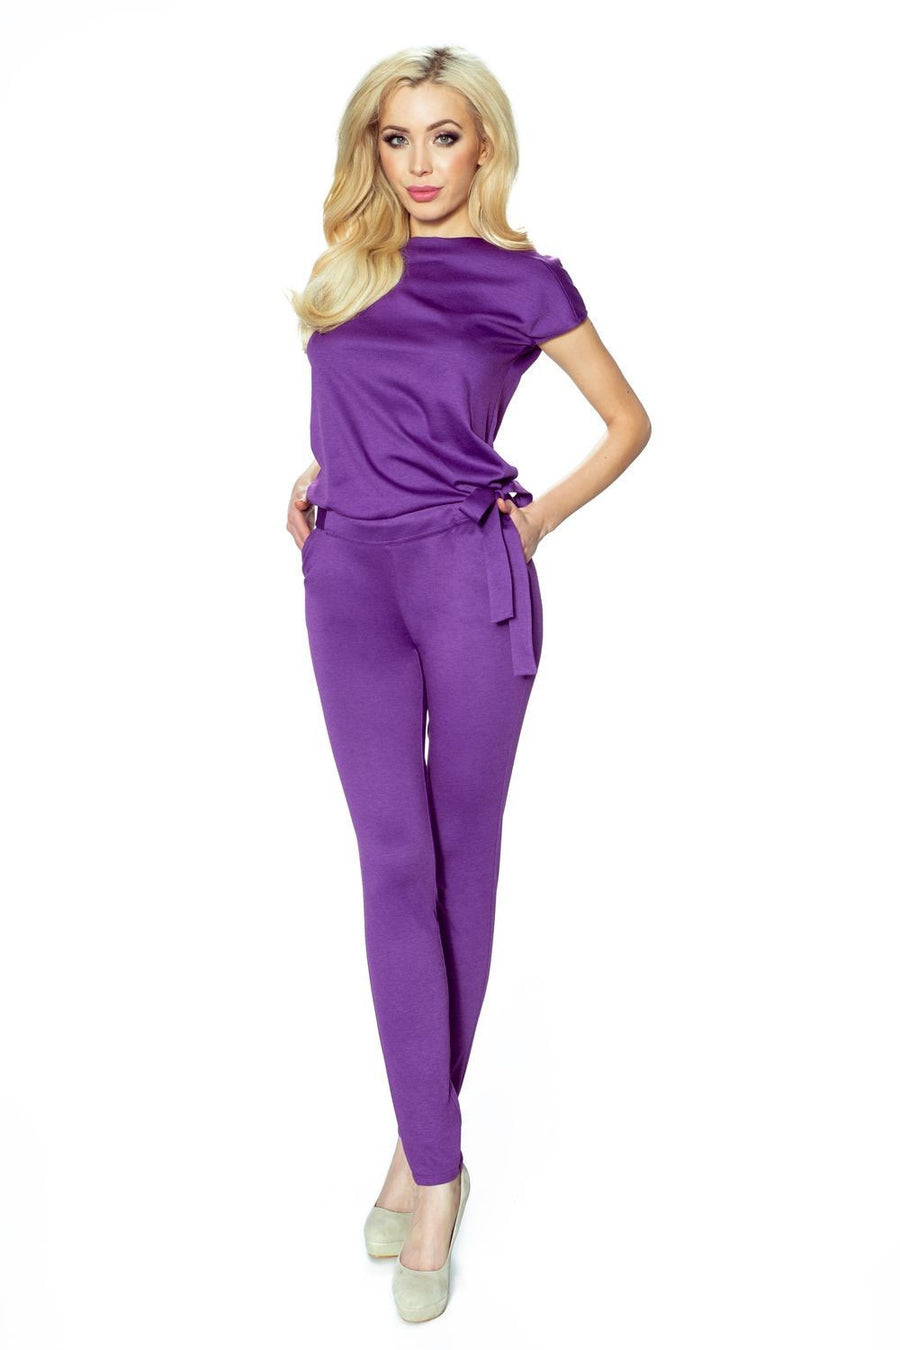 Suit 76880 Bergamo, Playsuits and Jumpsuits for Women, Bergamo, Très Fancy, violet, L, , , 76880, [fashion_accessories_online_shopping_canada]